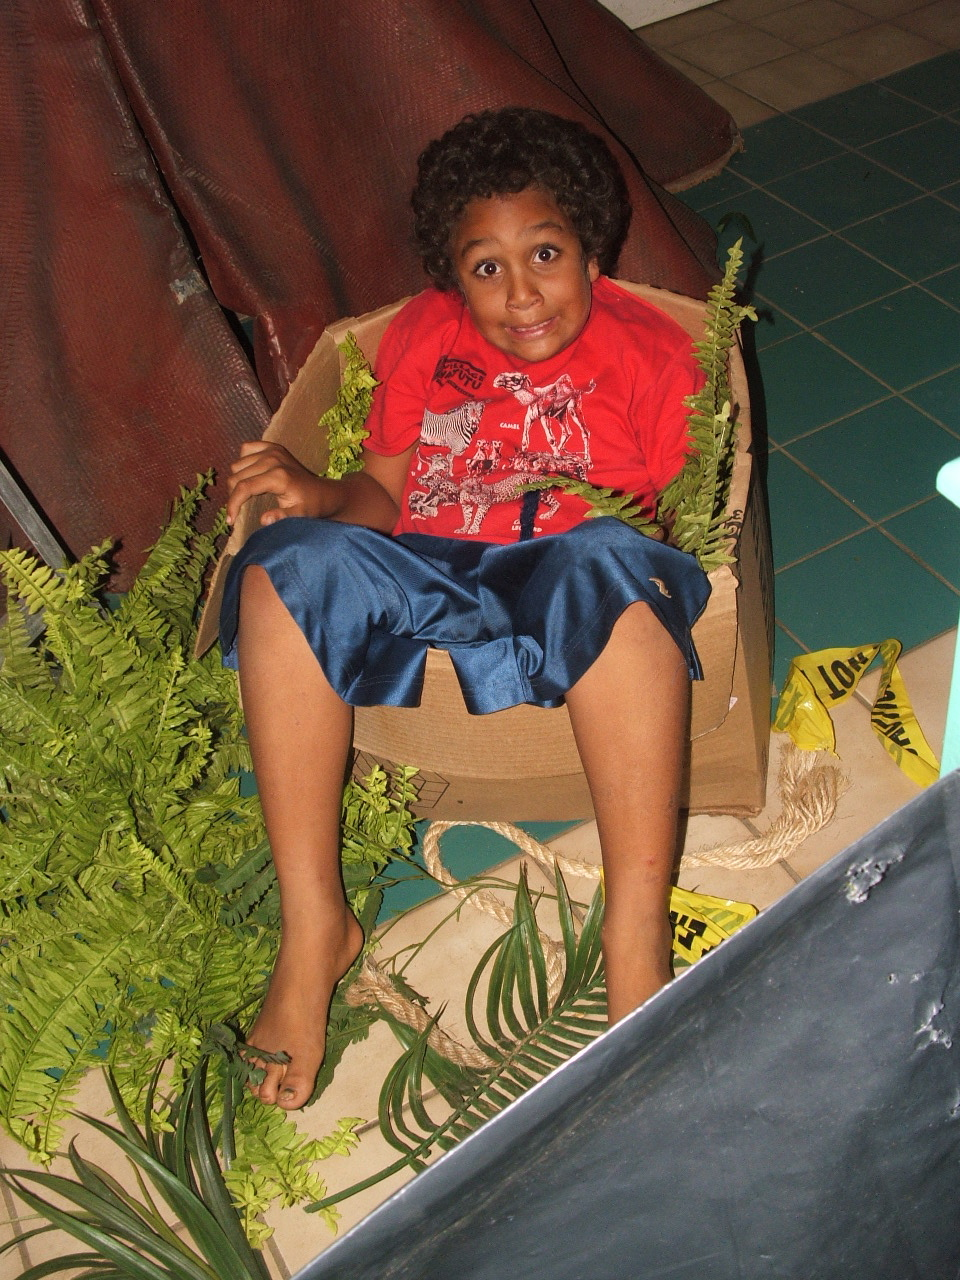 Jeb's in the fern box!